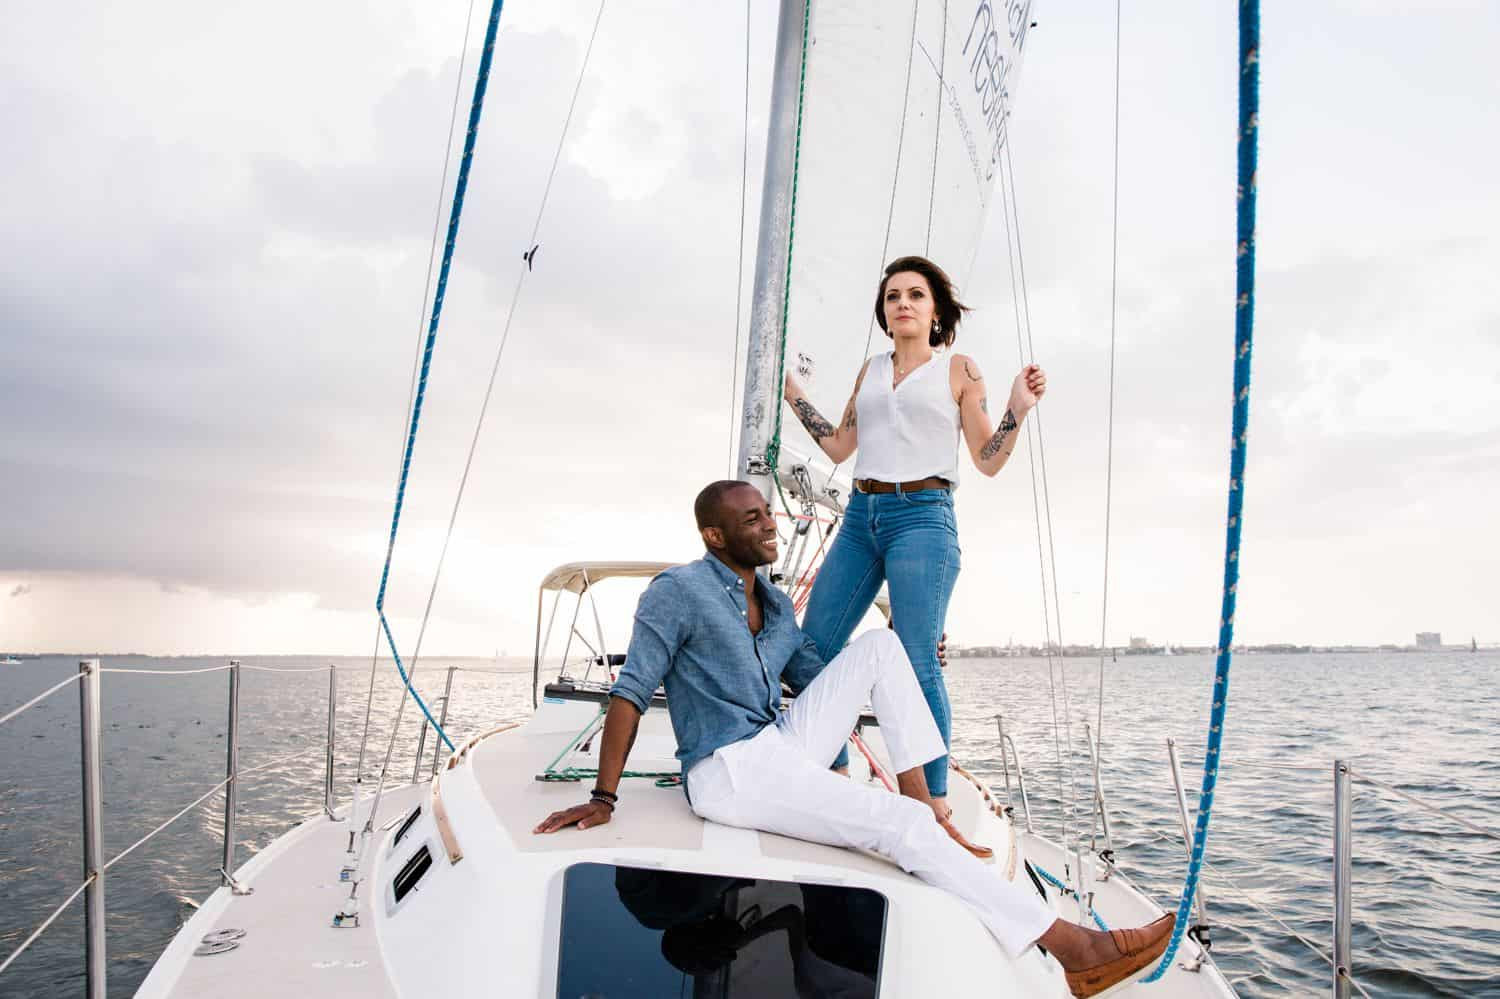 A Black man and a White woman sail on a sailboat